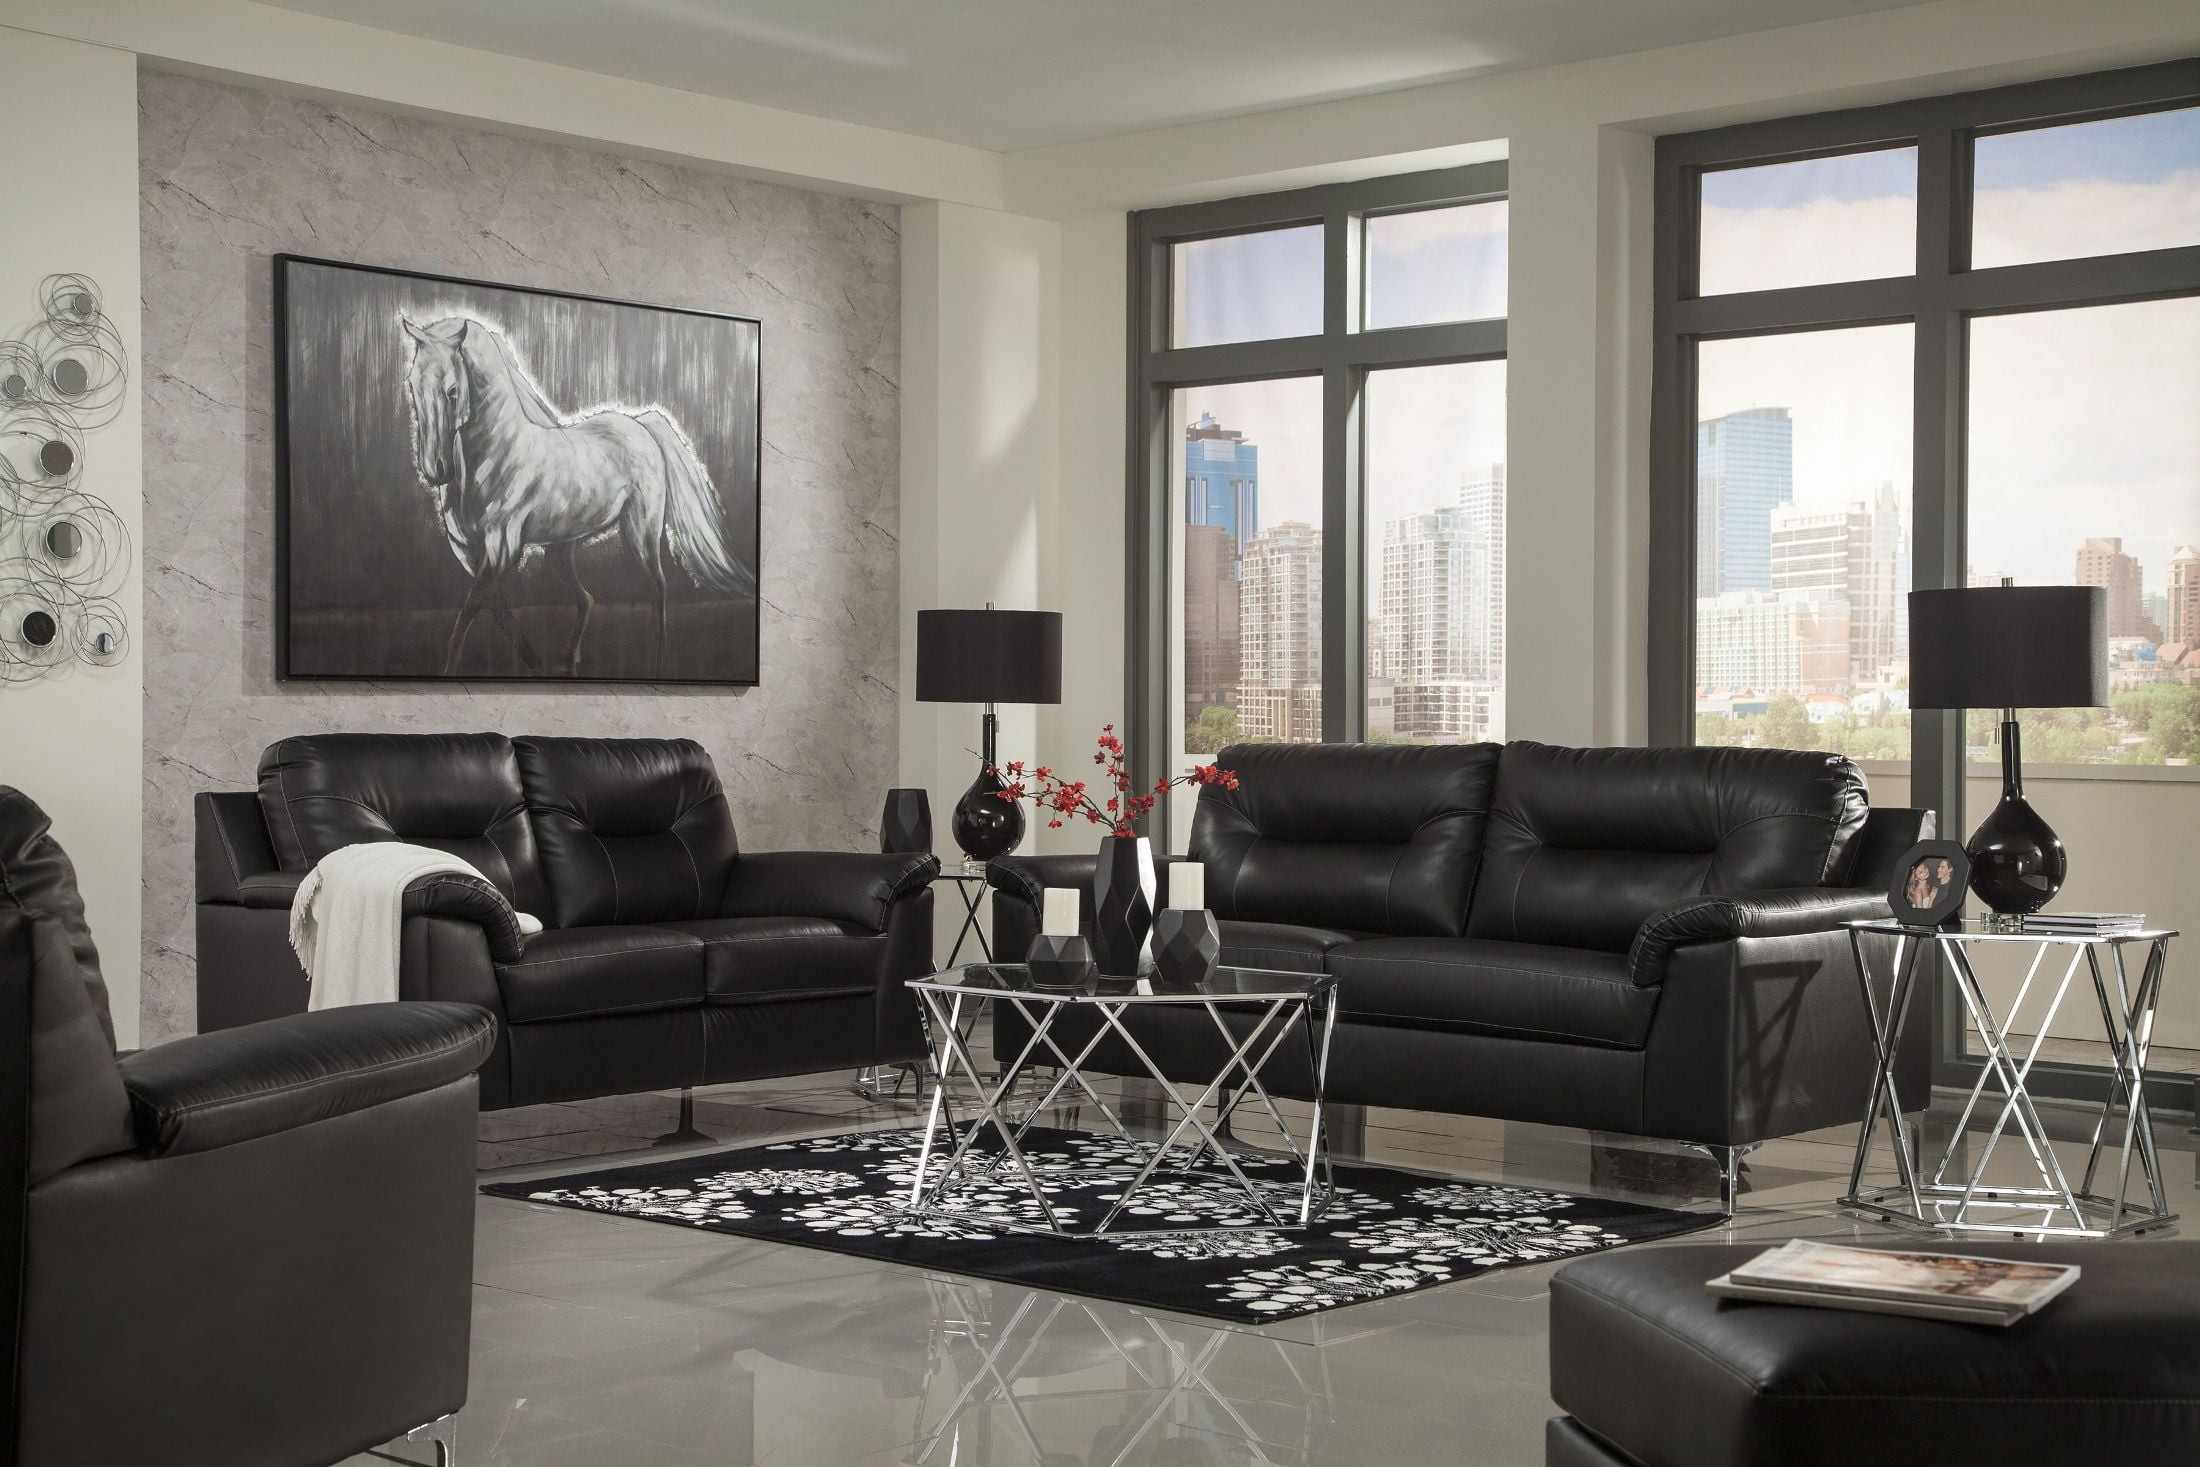 Signature Design Ashley Tensas Black Living Room Set Tensas inside White And Black Living Room Set